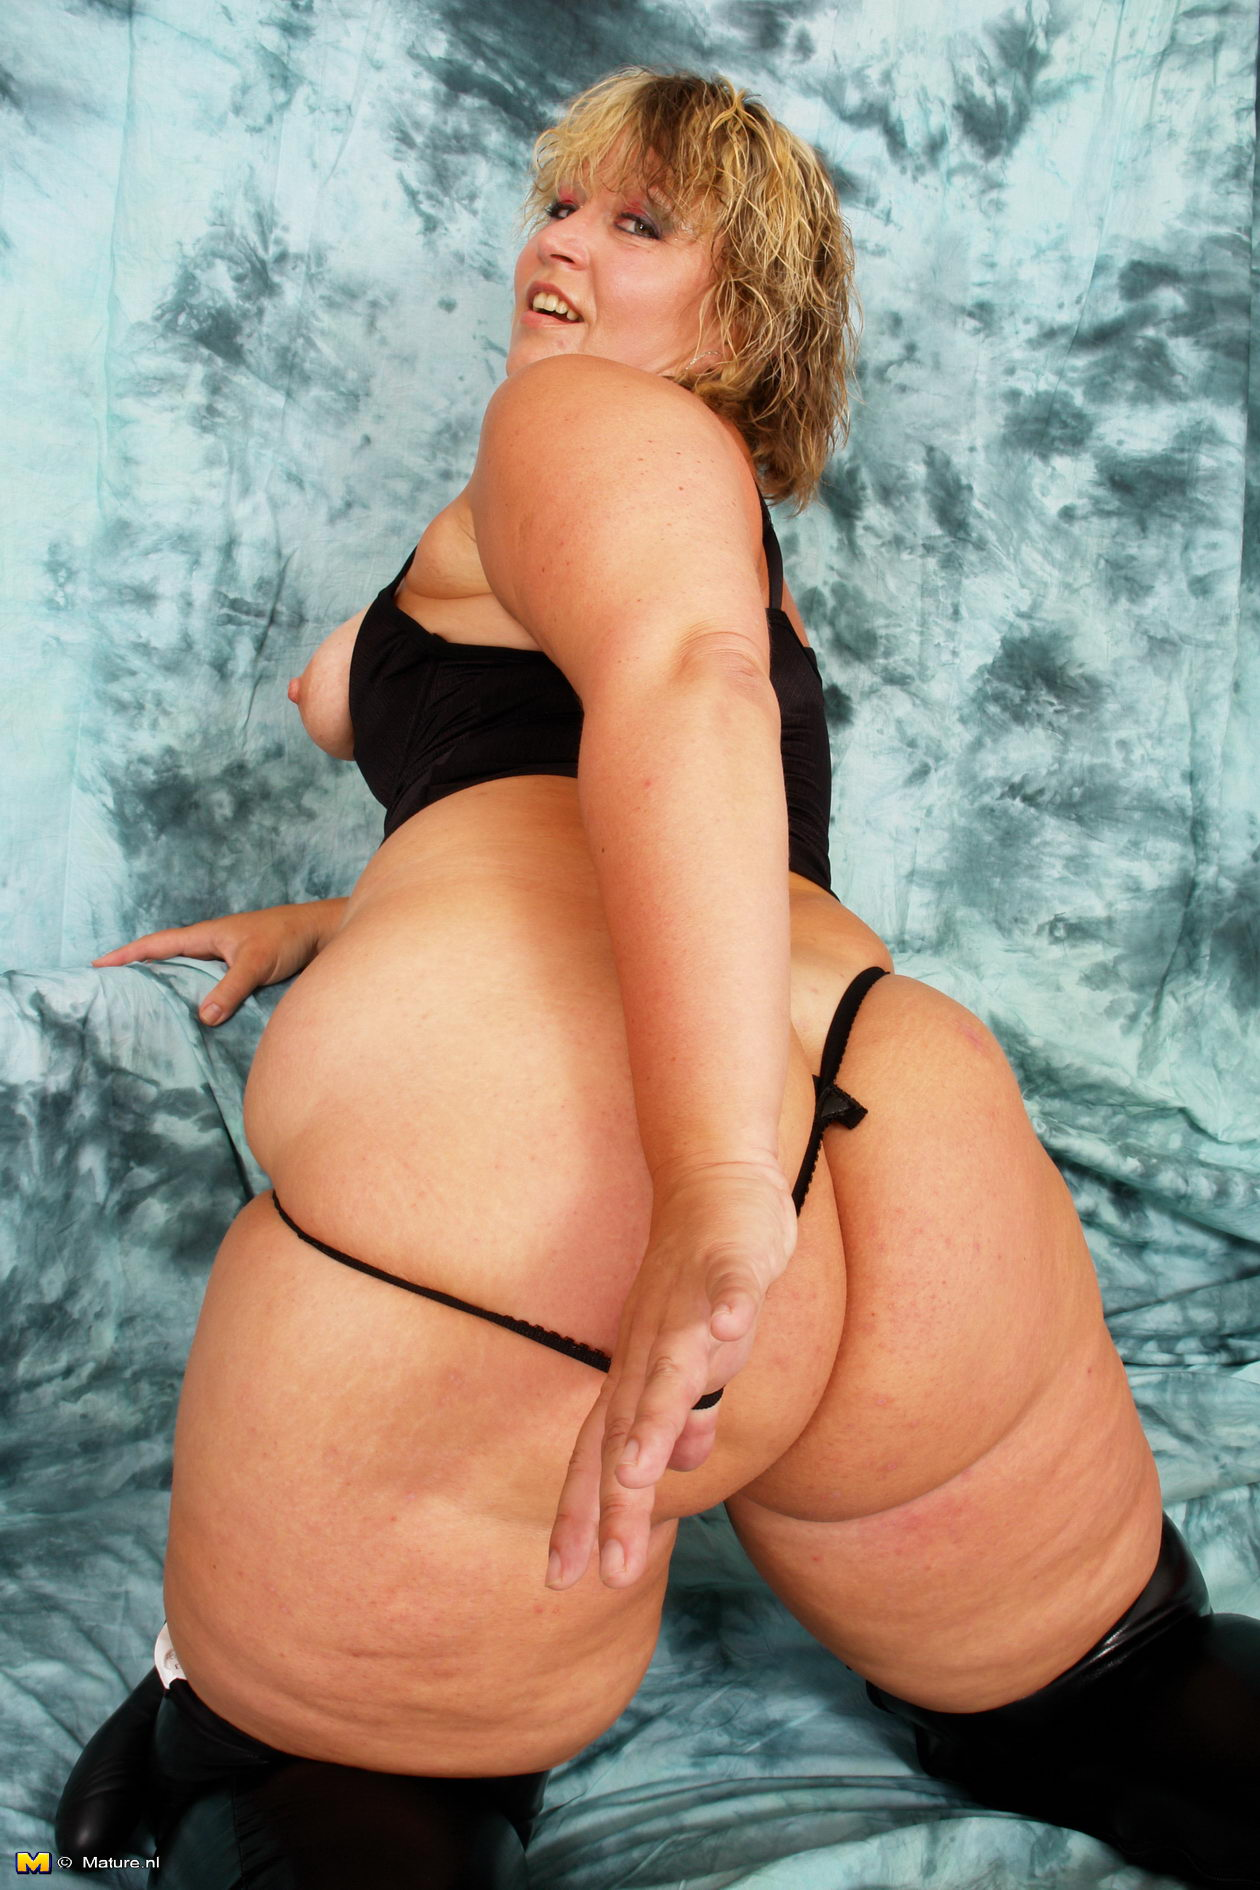 Plump mature ass